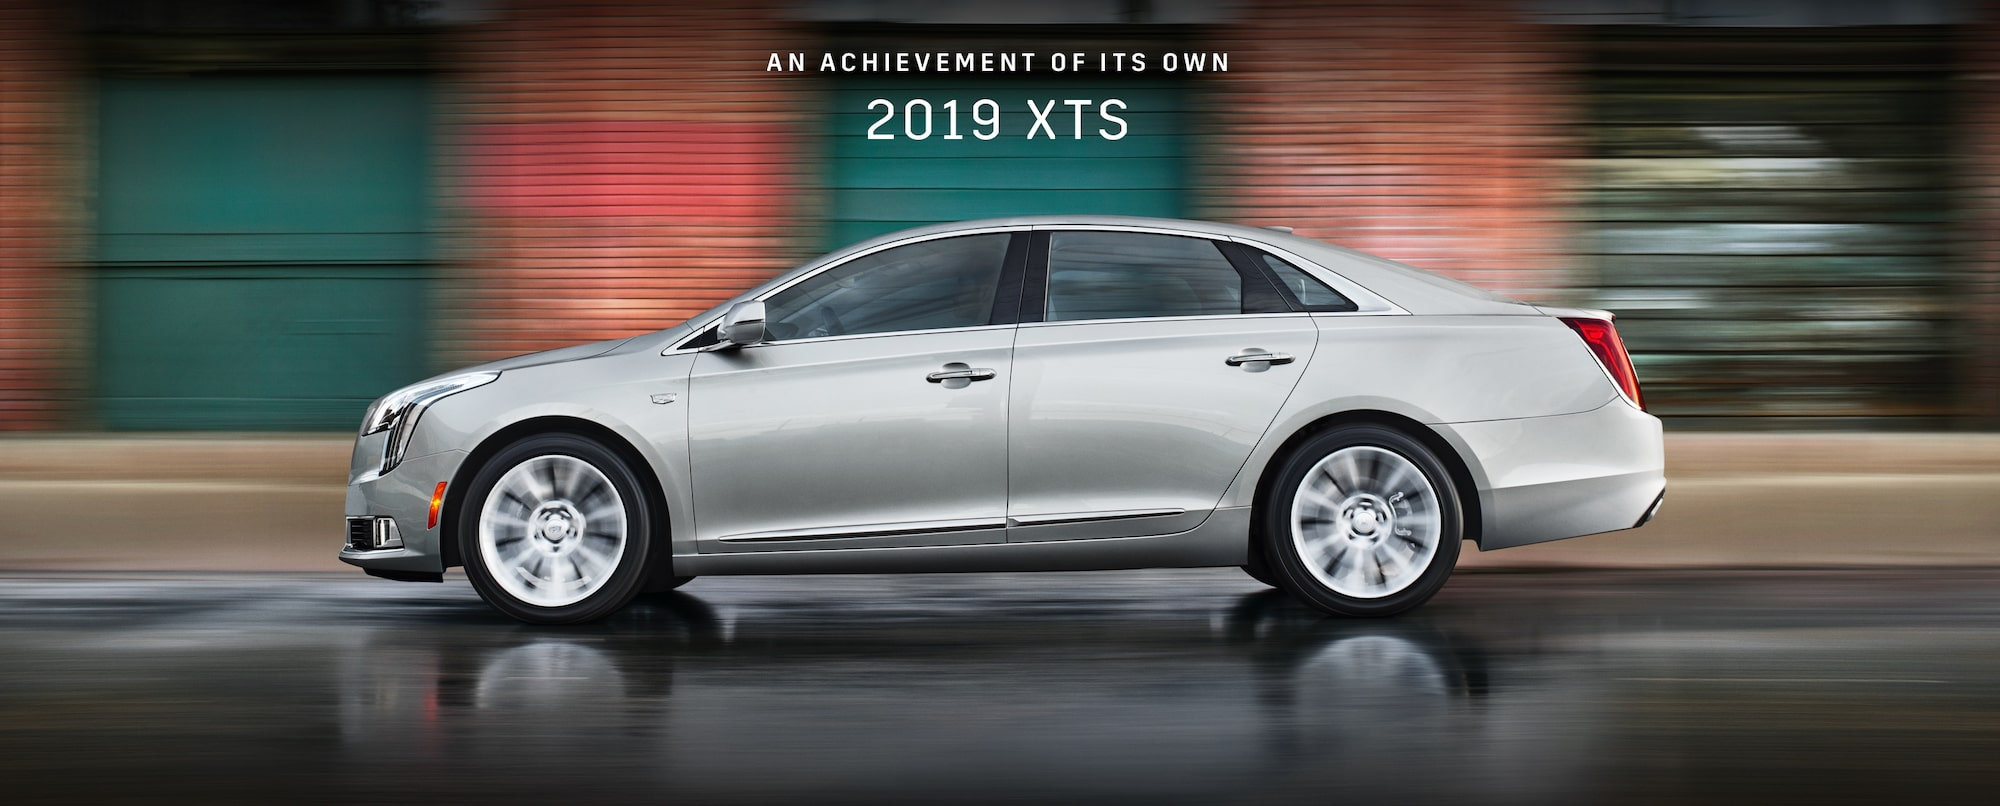 xts wiring diagram wiring diagrams lol 2012 cadillac xts wiring diagram wiring library diagram h9 series [ 1613 x 650 Pixel ]